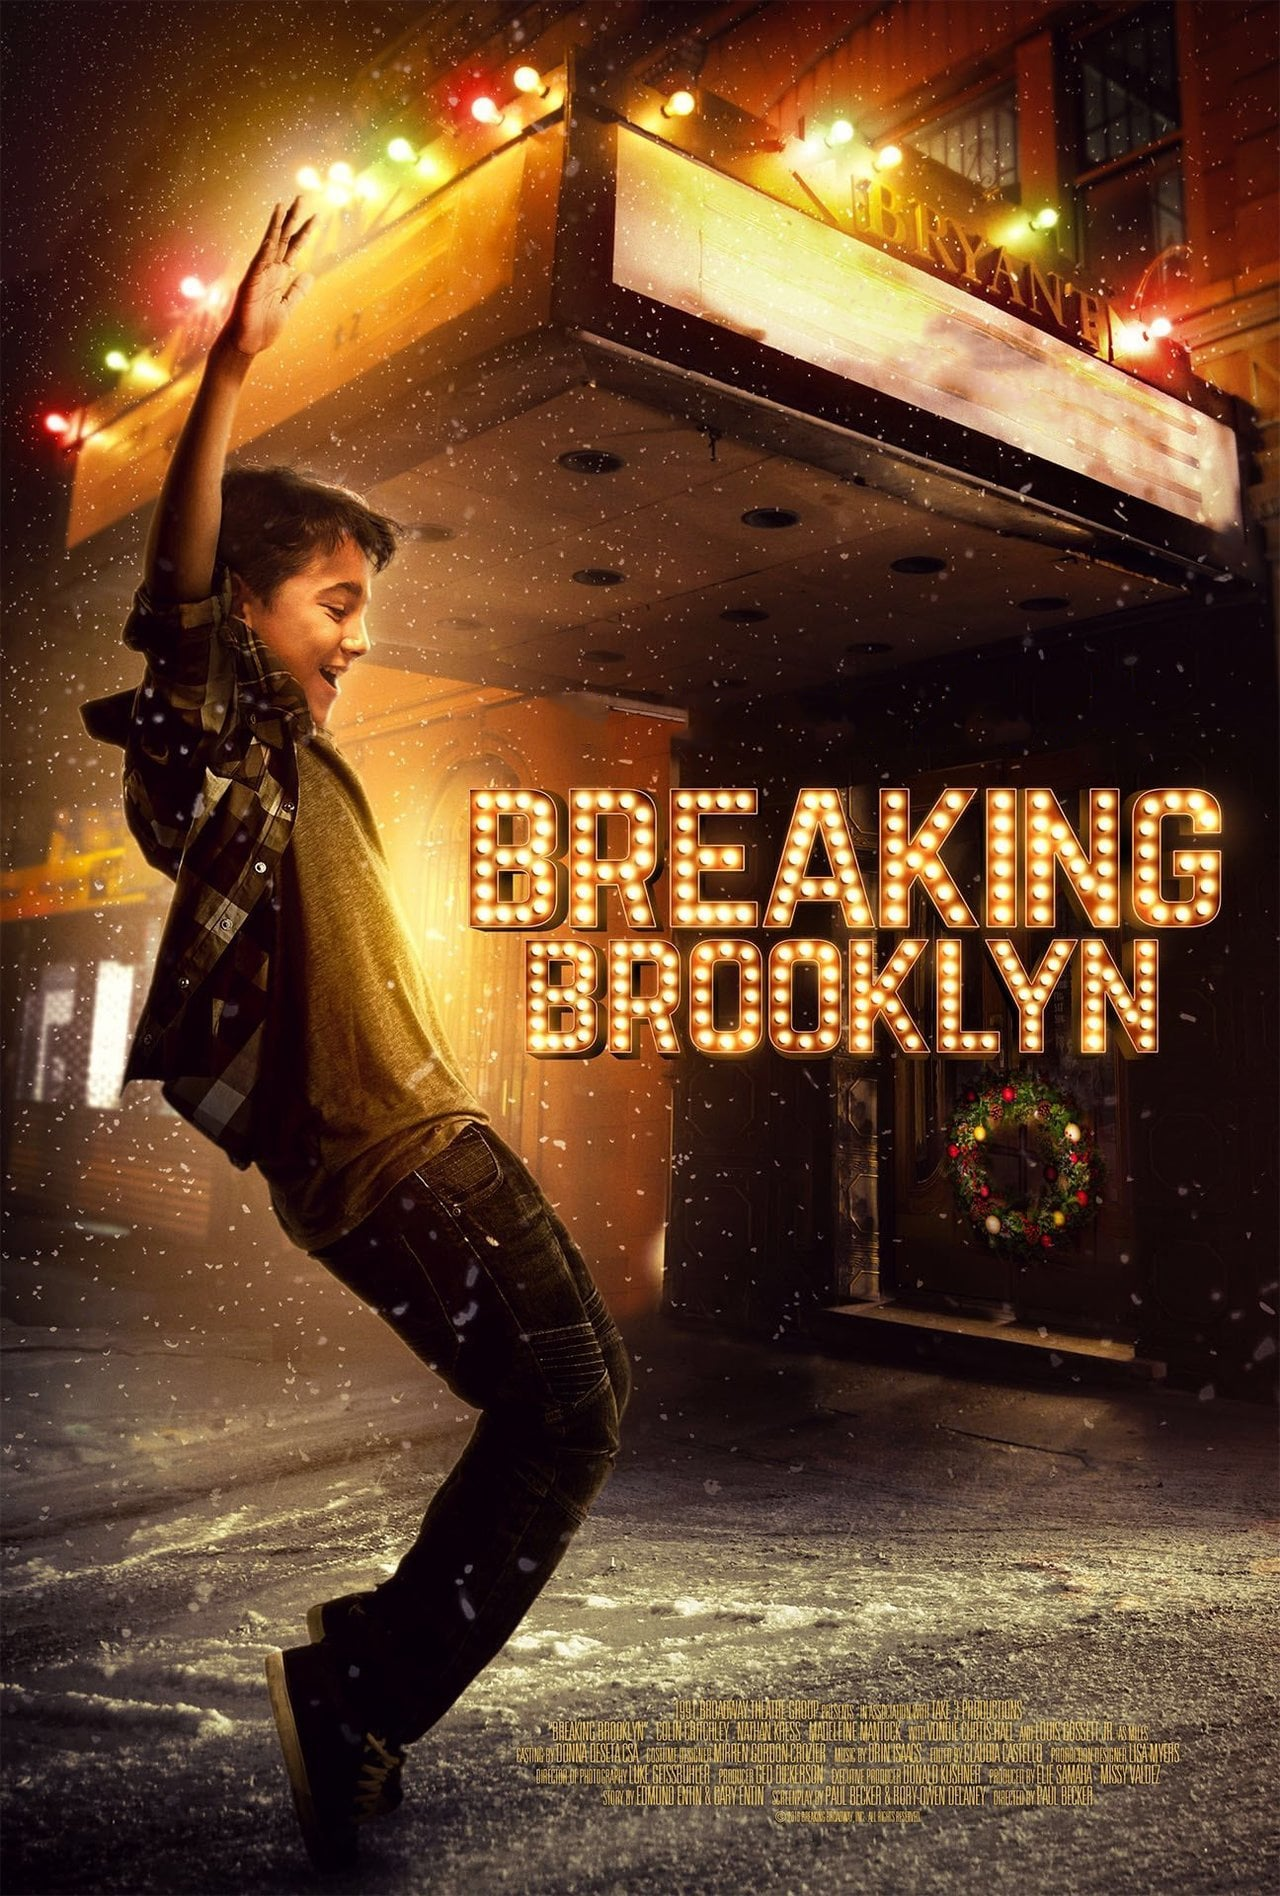 image for Breaking Brooklyn